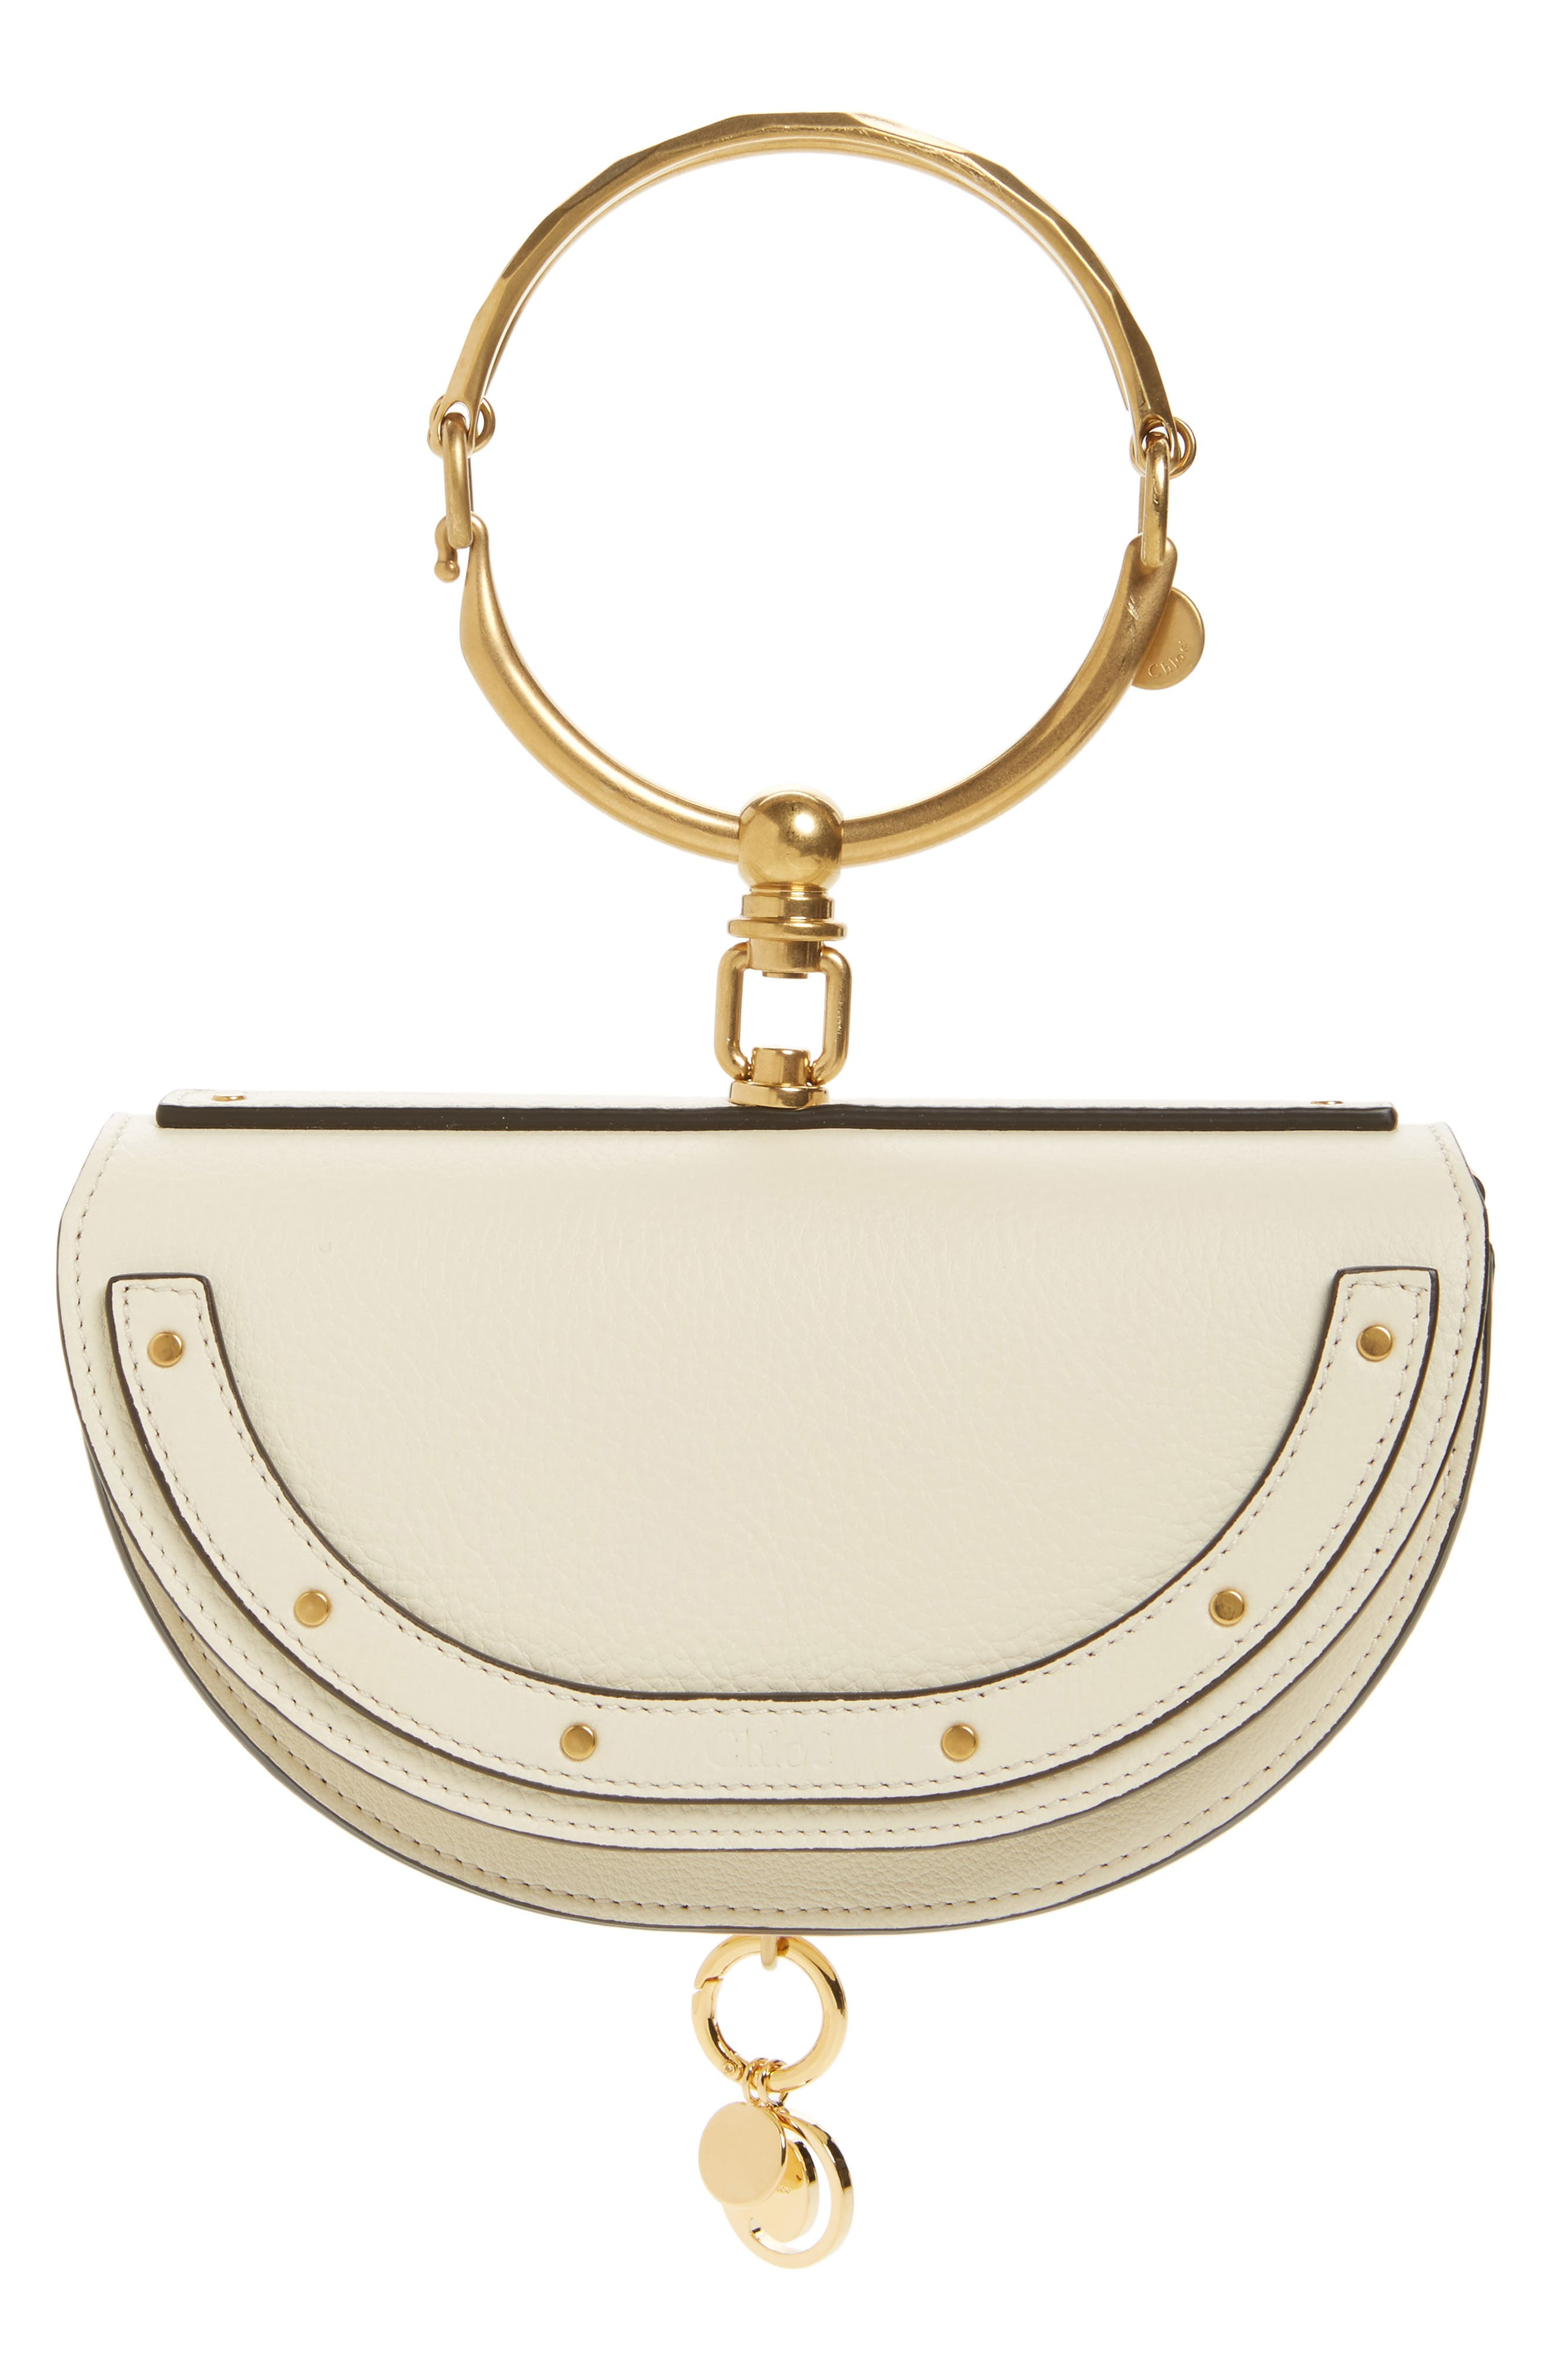 Main Image - Chloé Small Nile Bracelet Calfskin Leather Minaudiere